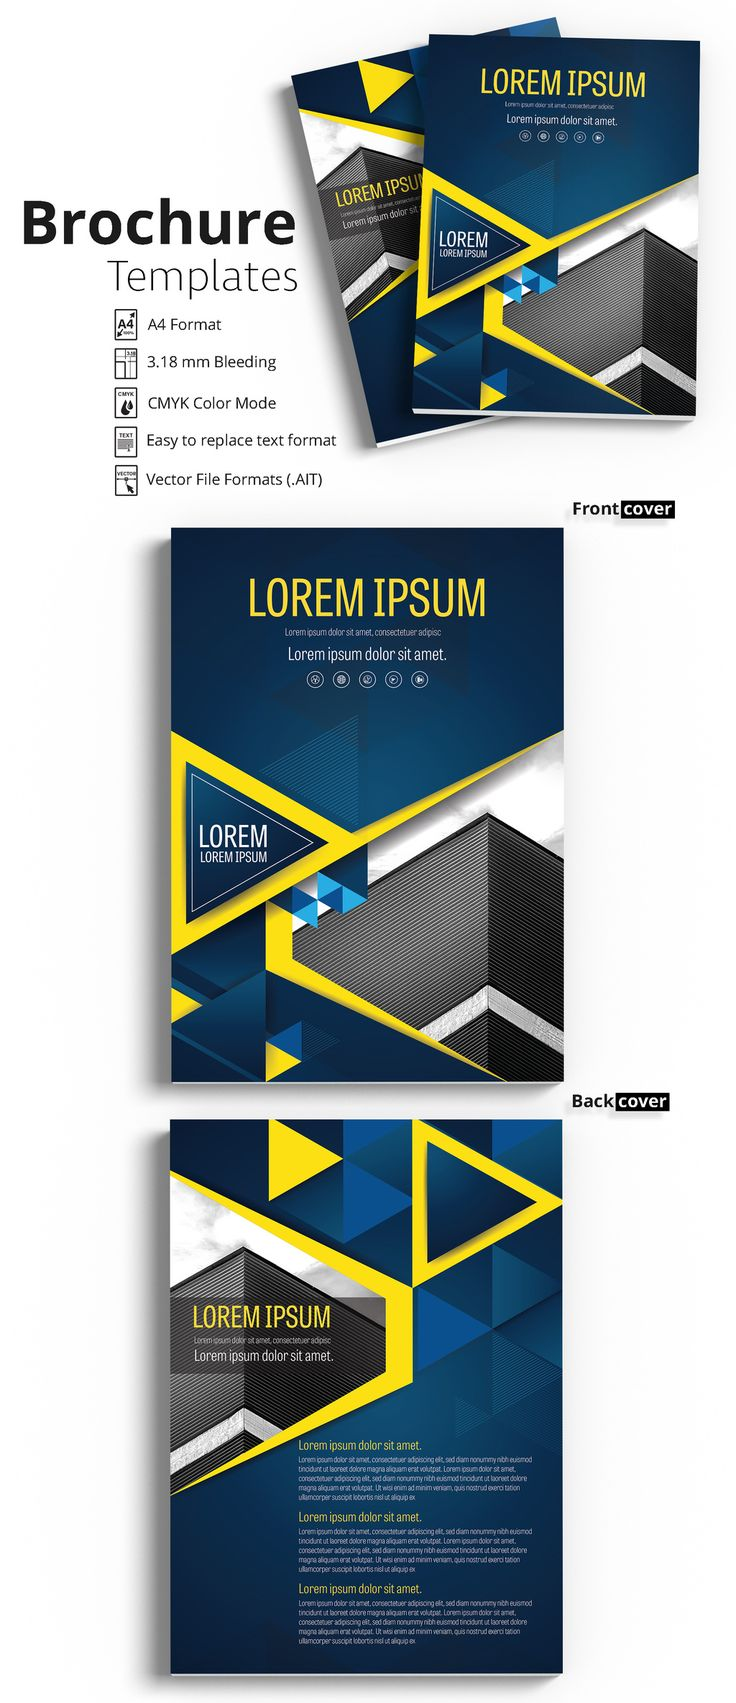 Brochure Cover Layout with Blue and Yellow Accents 2 - image | Adobe Stock #Brochure #Business #Proposal #Booklet #Flyer #Template #Design #Layout #Cover #Book #Booklet #A4 #Annual #Report| Brochure template | Brochure design template | Flyers | Template | Brochures | Flyer Background | Background design | Business Proposal | Proposal Design | Booklet | Professional | Professional - Proposal - Brochure - Template